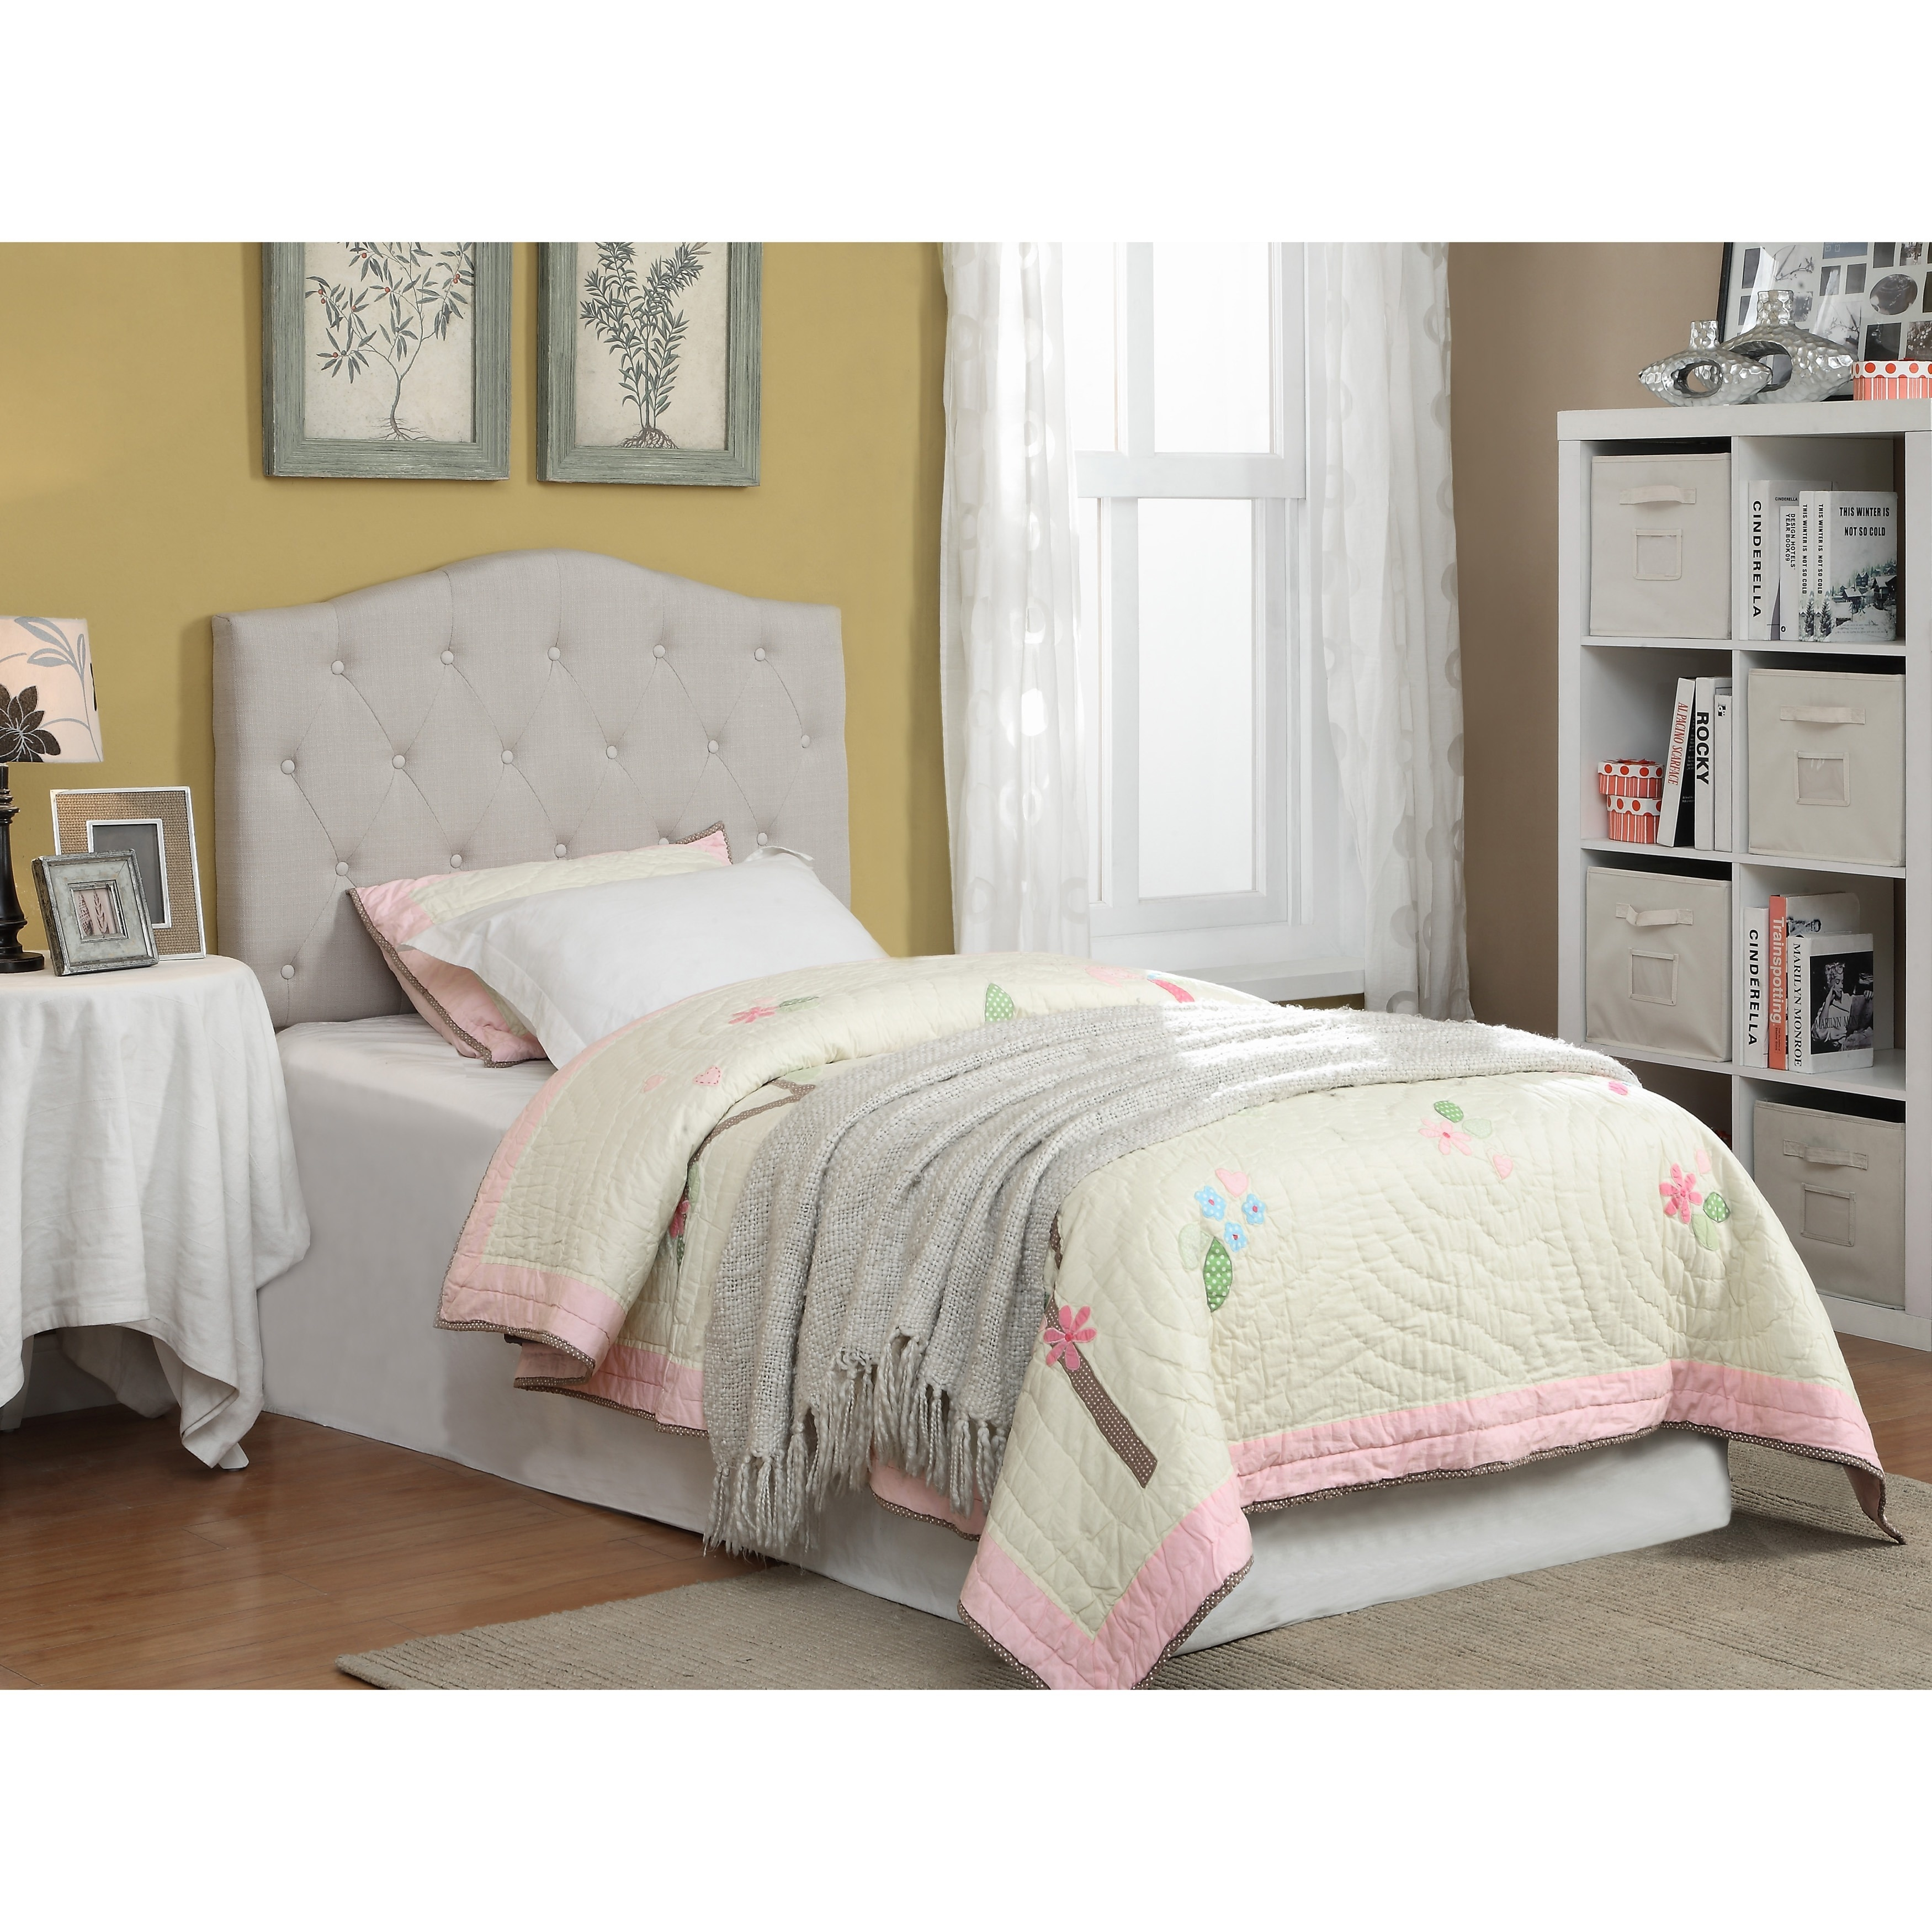 Furniture Of America Tiffie Flax Fabric Upholstered Tufted Headboard